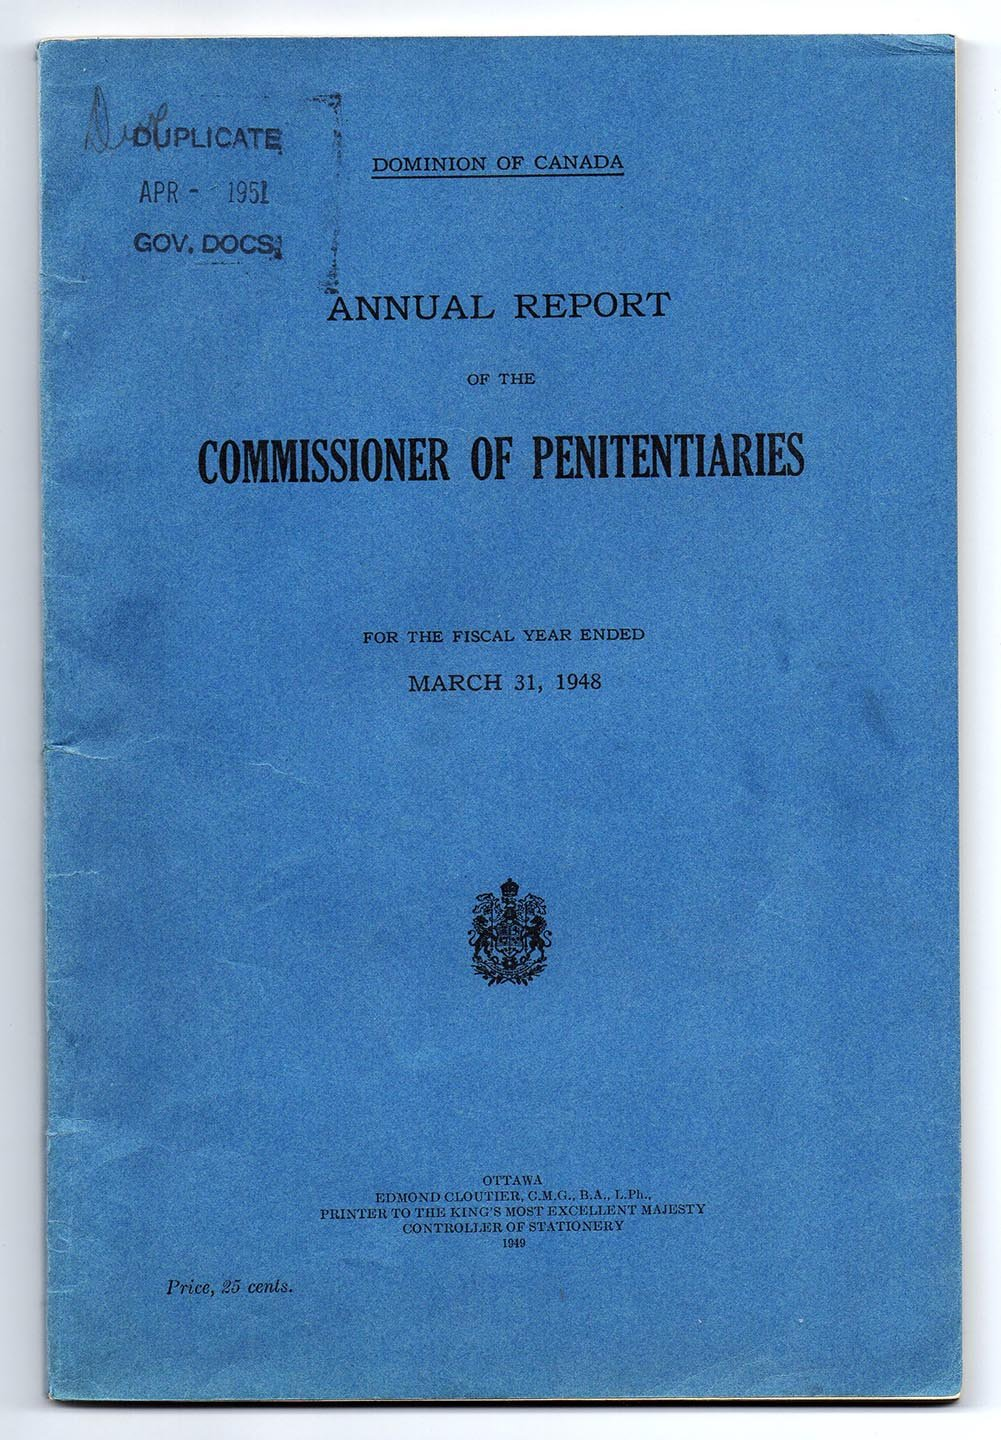 Annual Report of the Commissioner of Penitentiaries for the Fiscal Year ended March 31, 1948